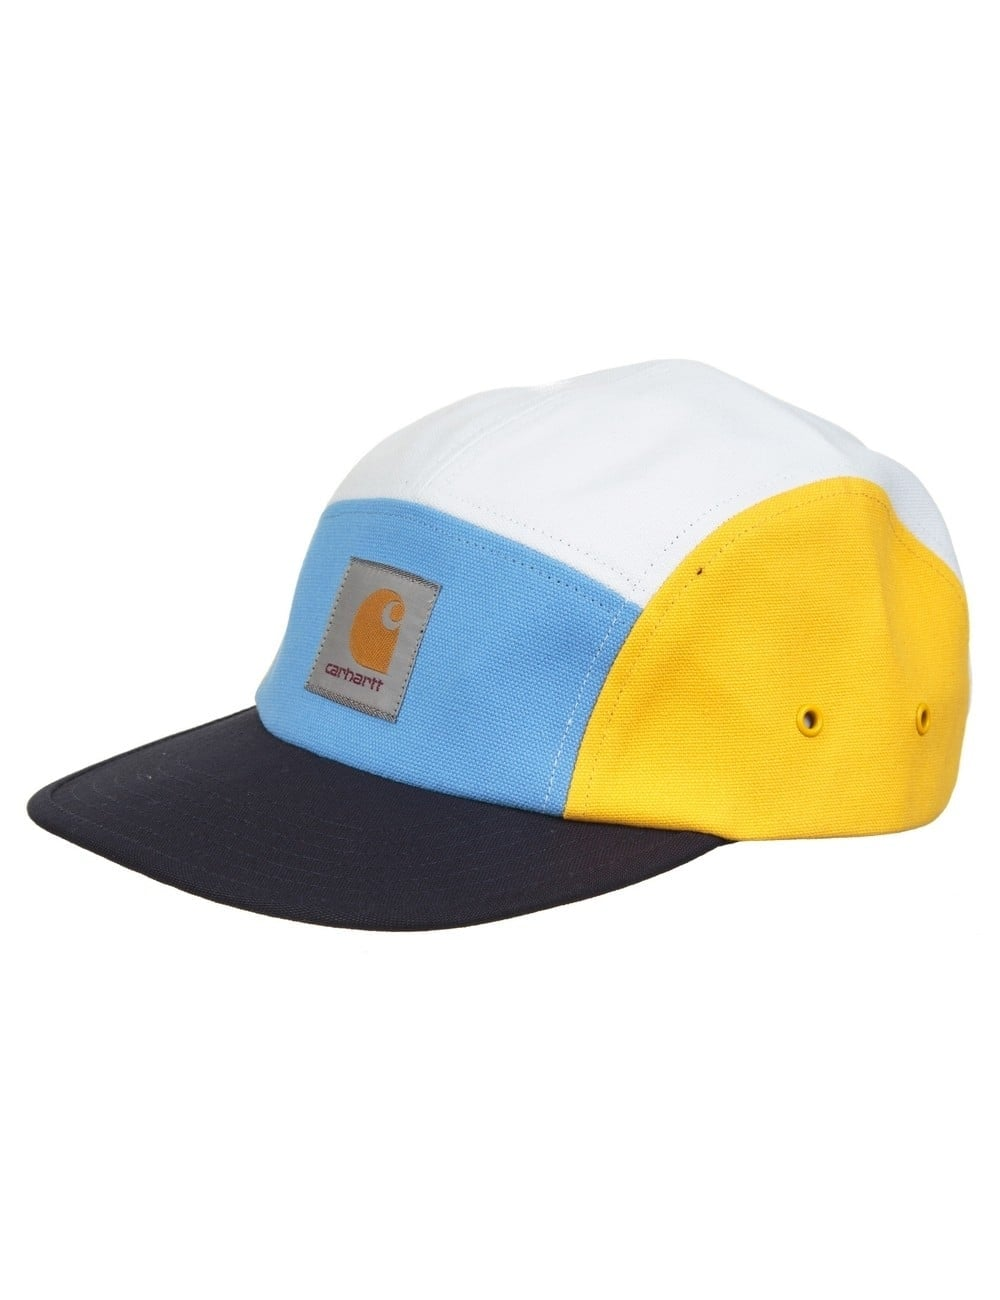 107e8b80 Carhartt WIP Backley 5 Panel Hat - Multicolour - Accessories from ...